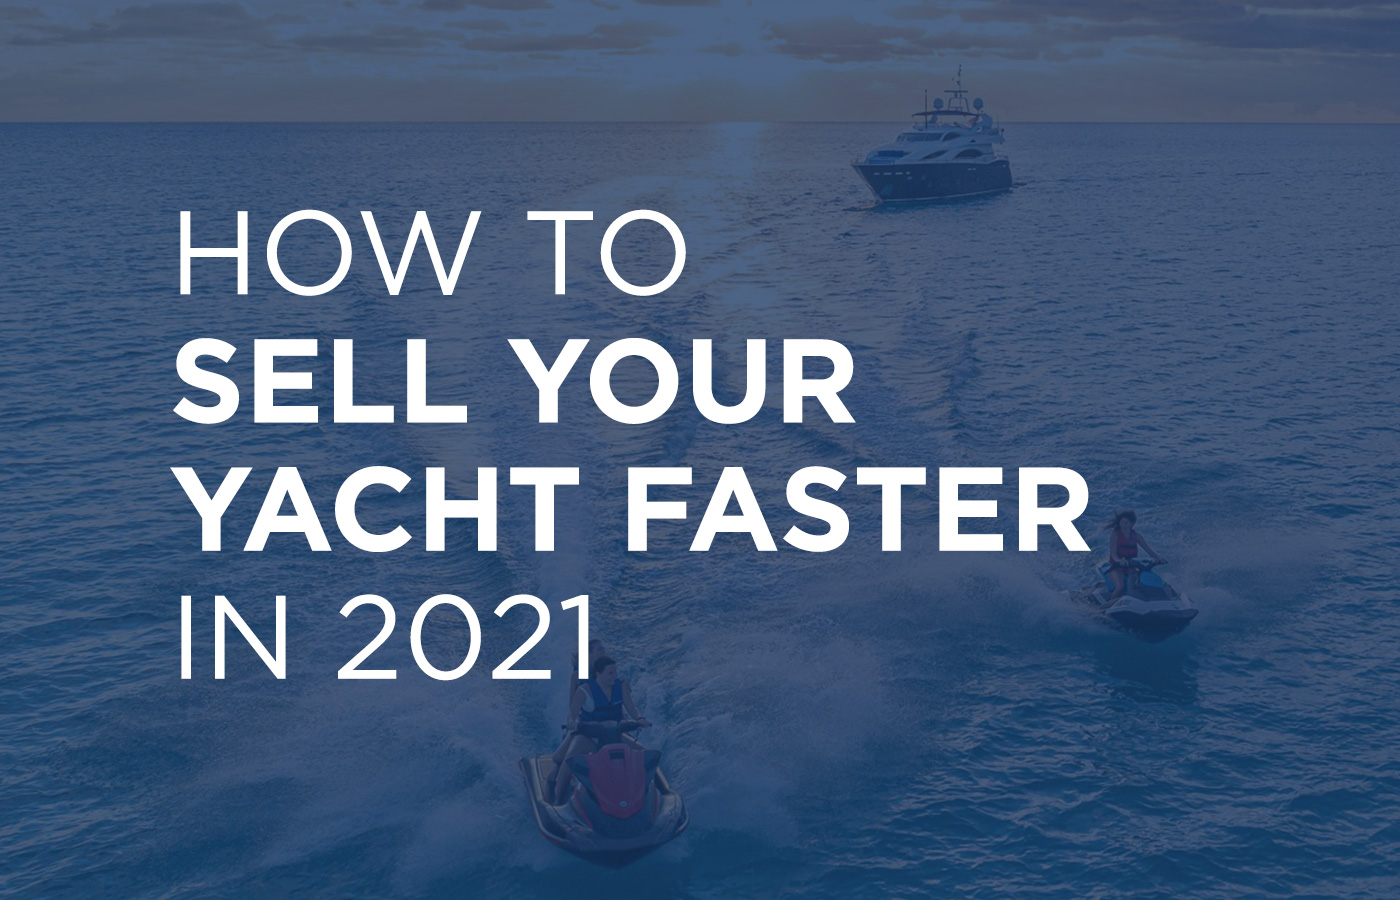 How To Sell Your Yacht Faster In 2021